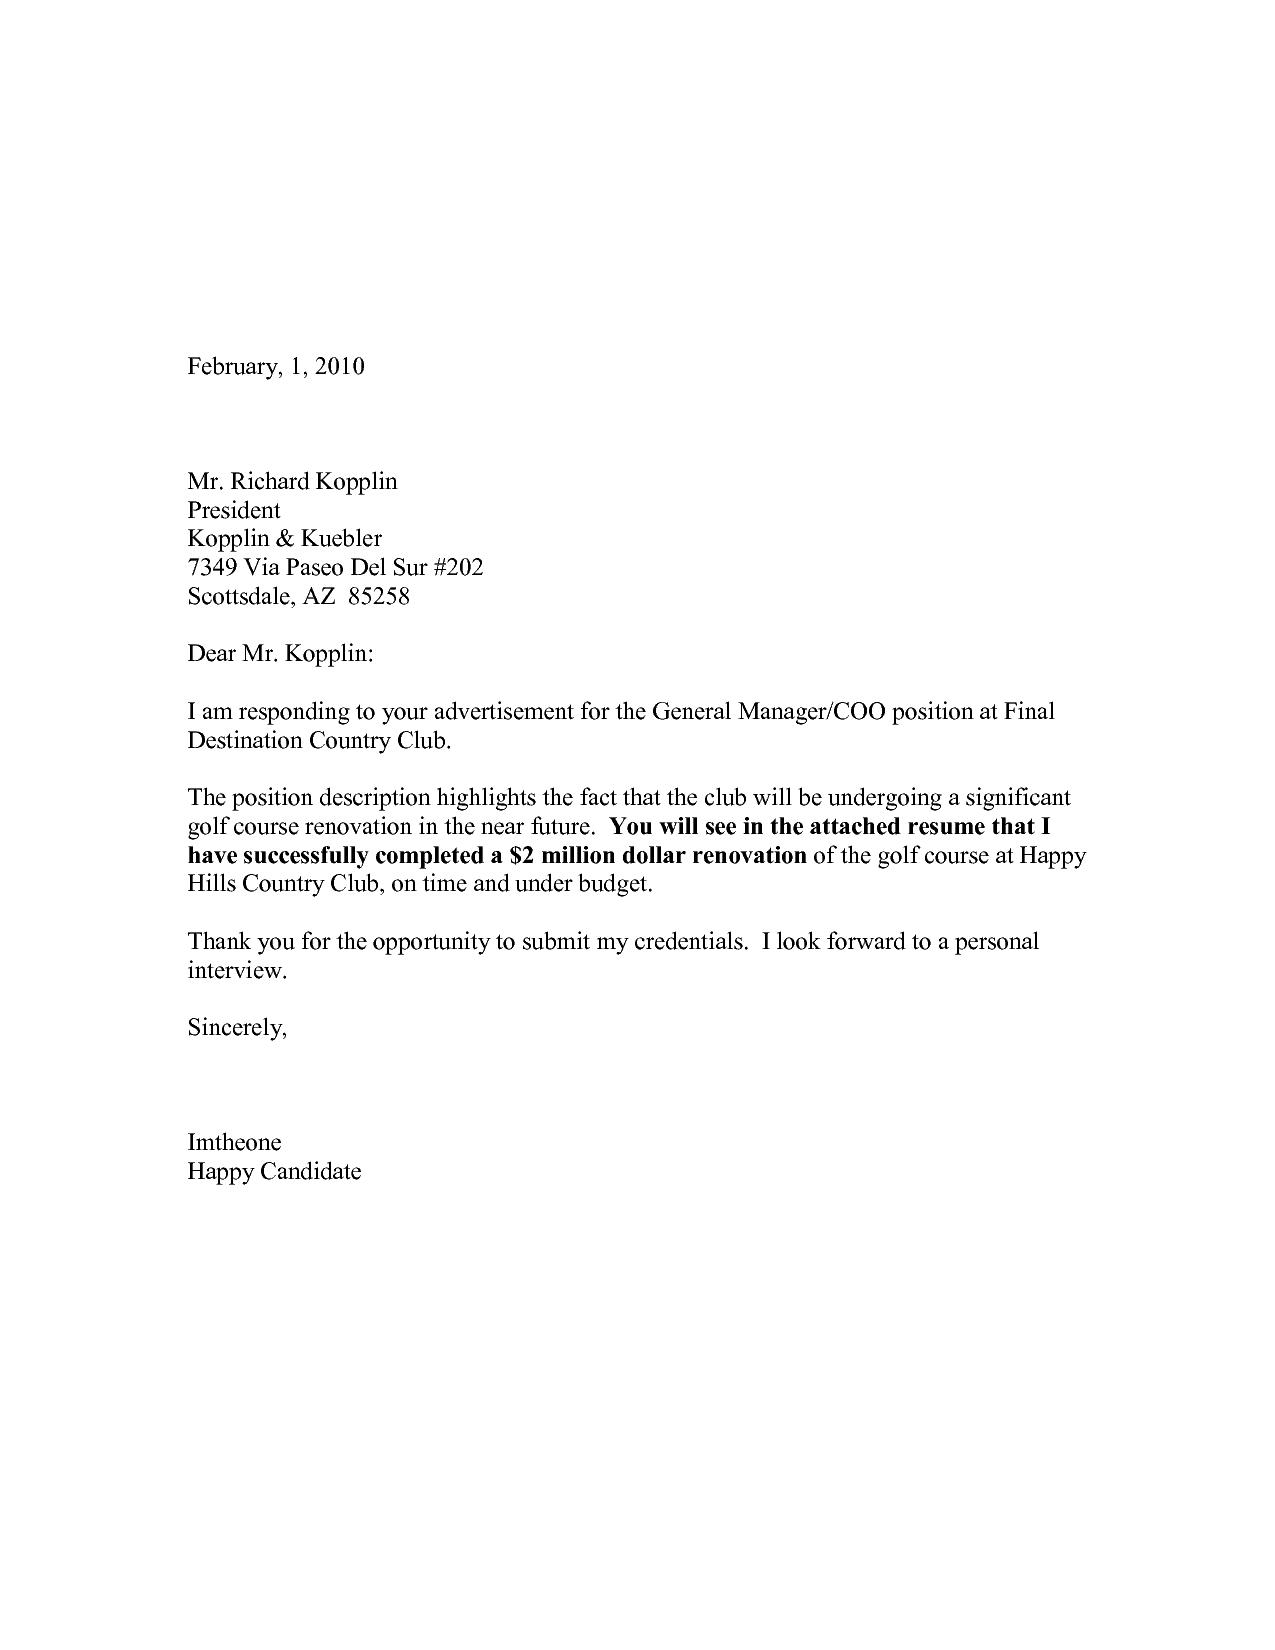 Resume Cover Letter Examples